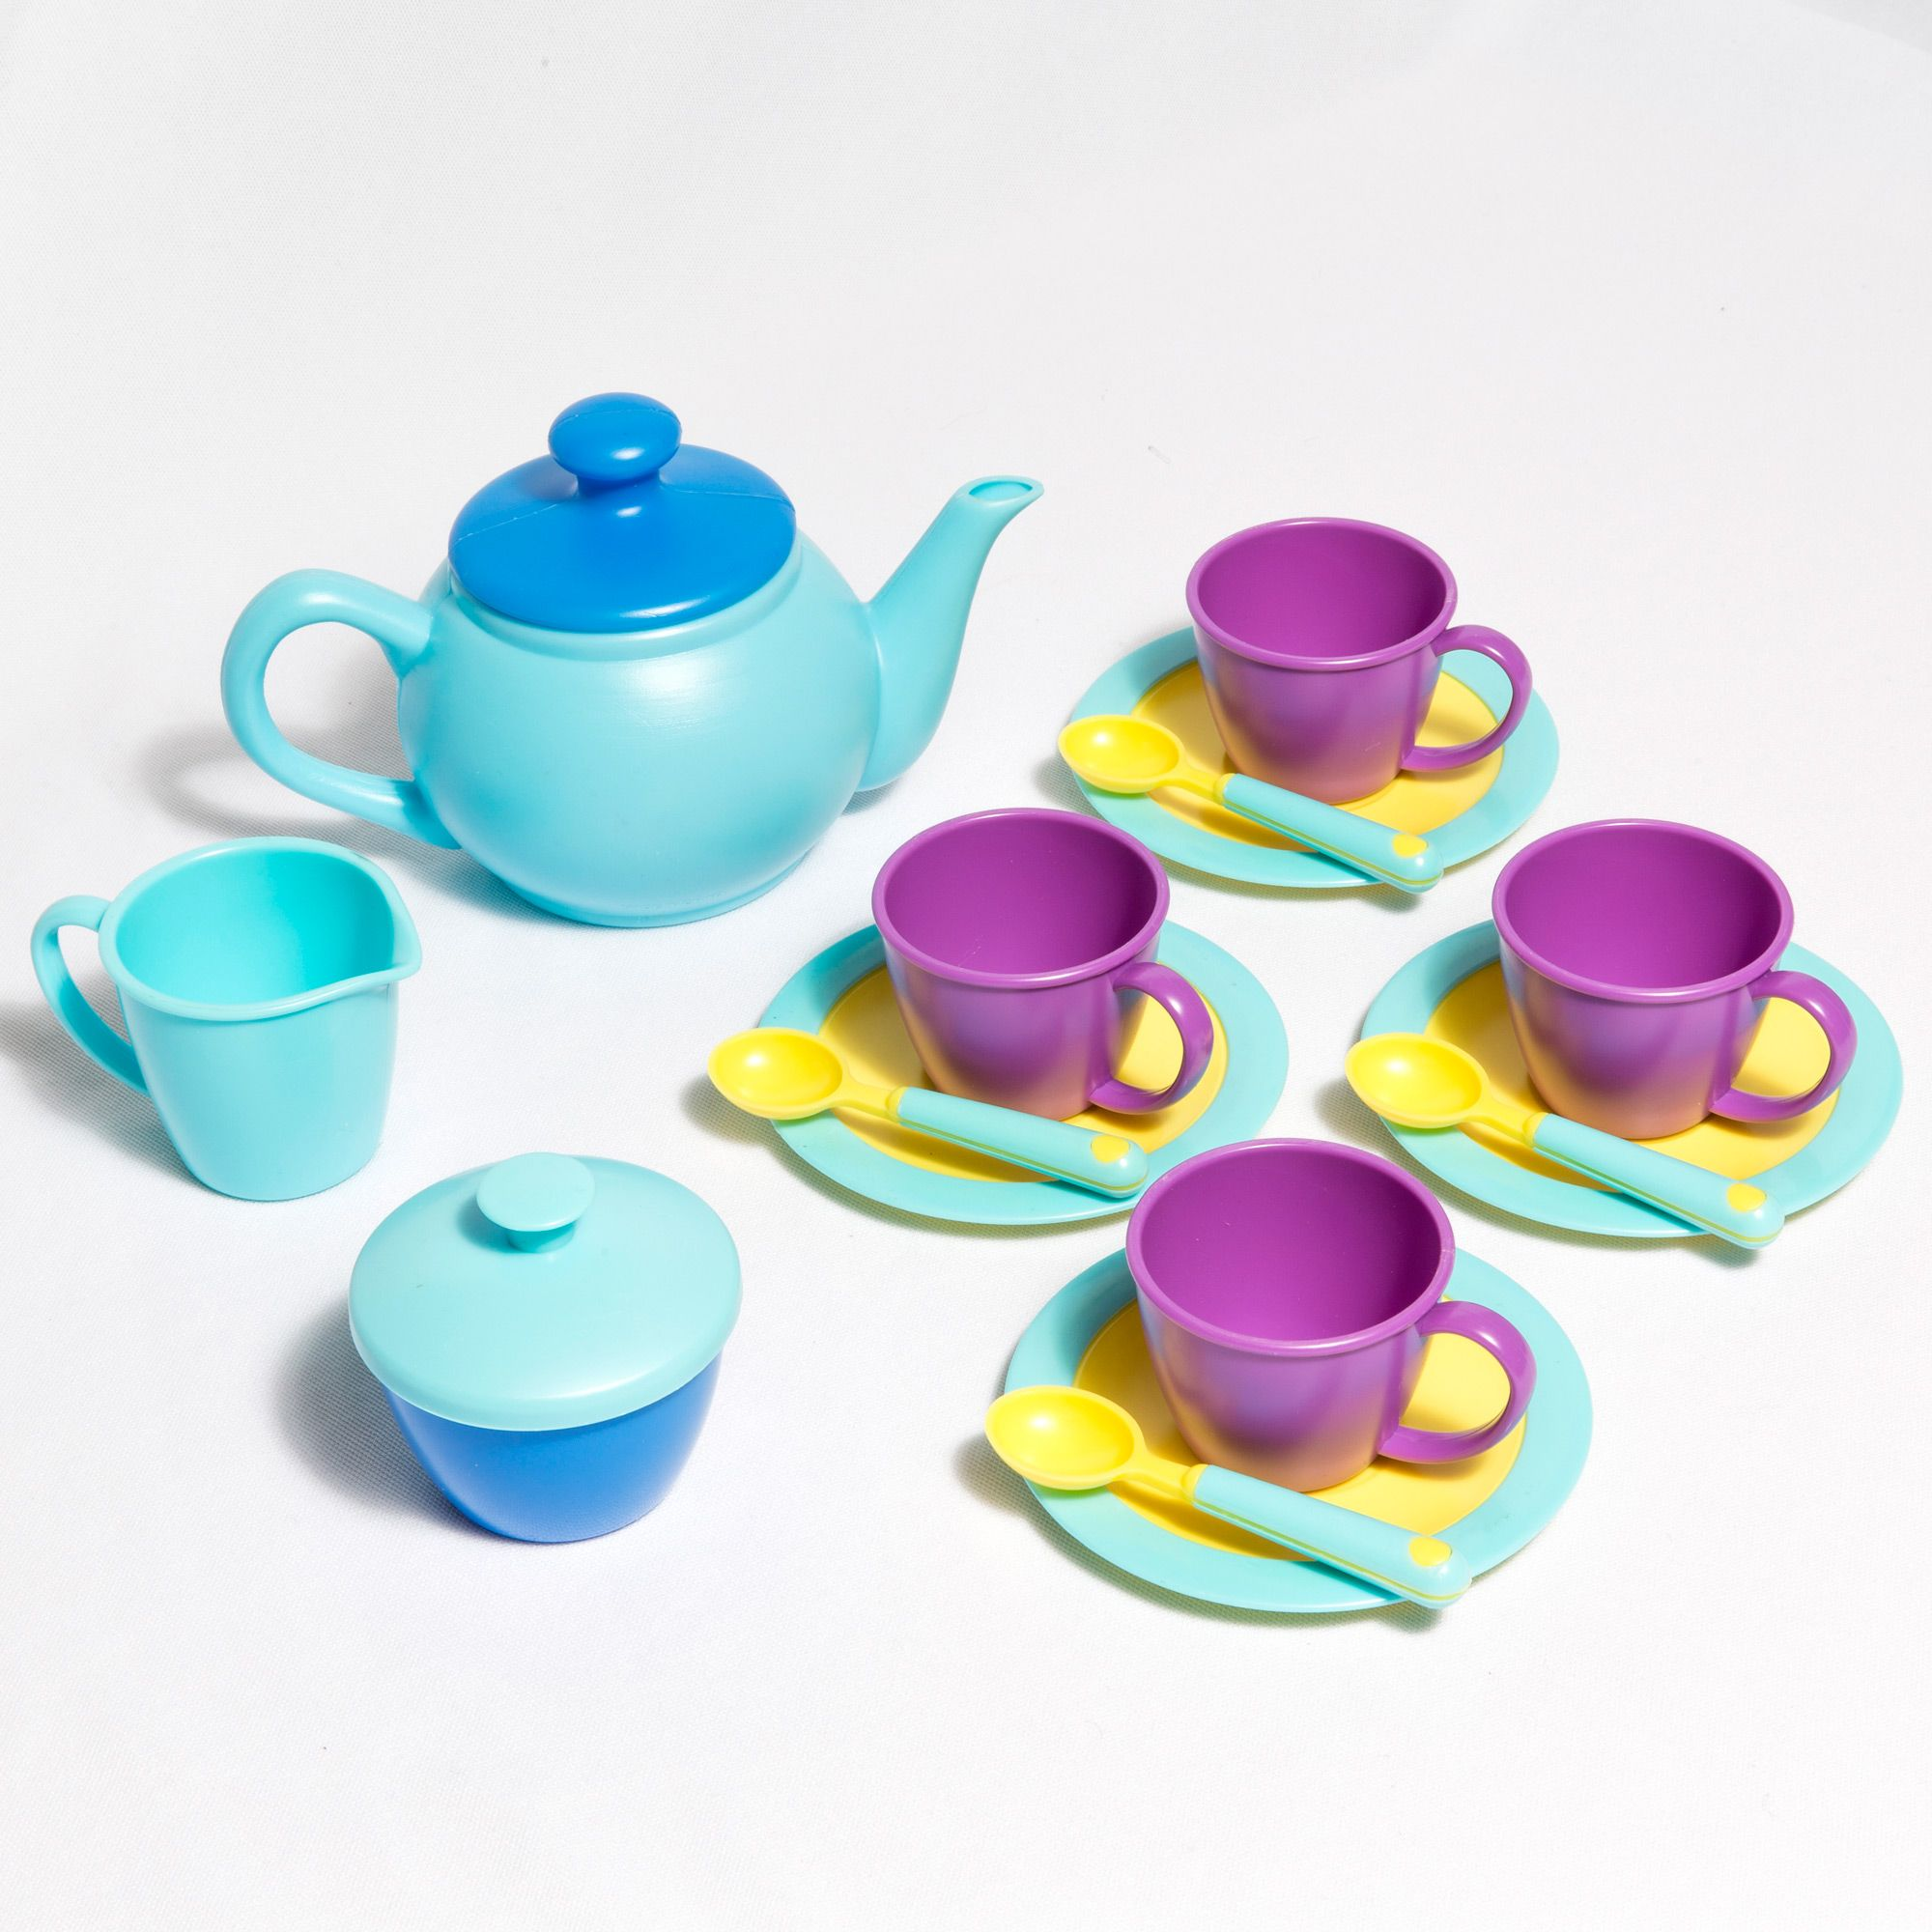 Hamleys Play Time Tea Set